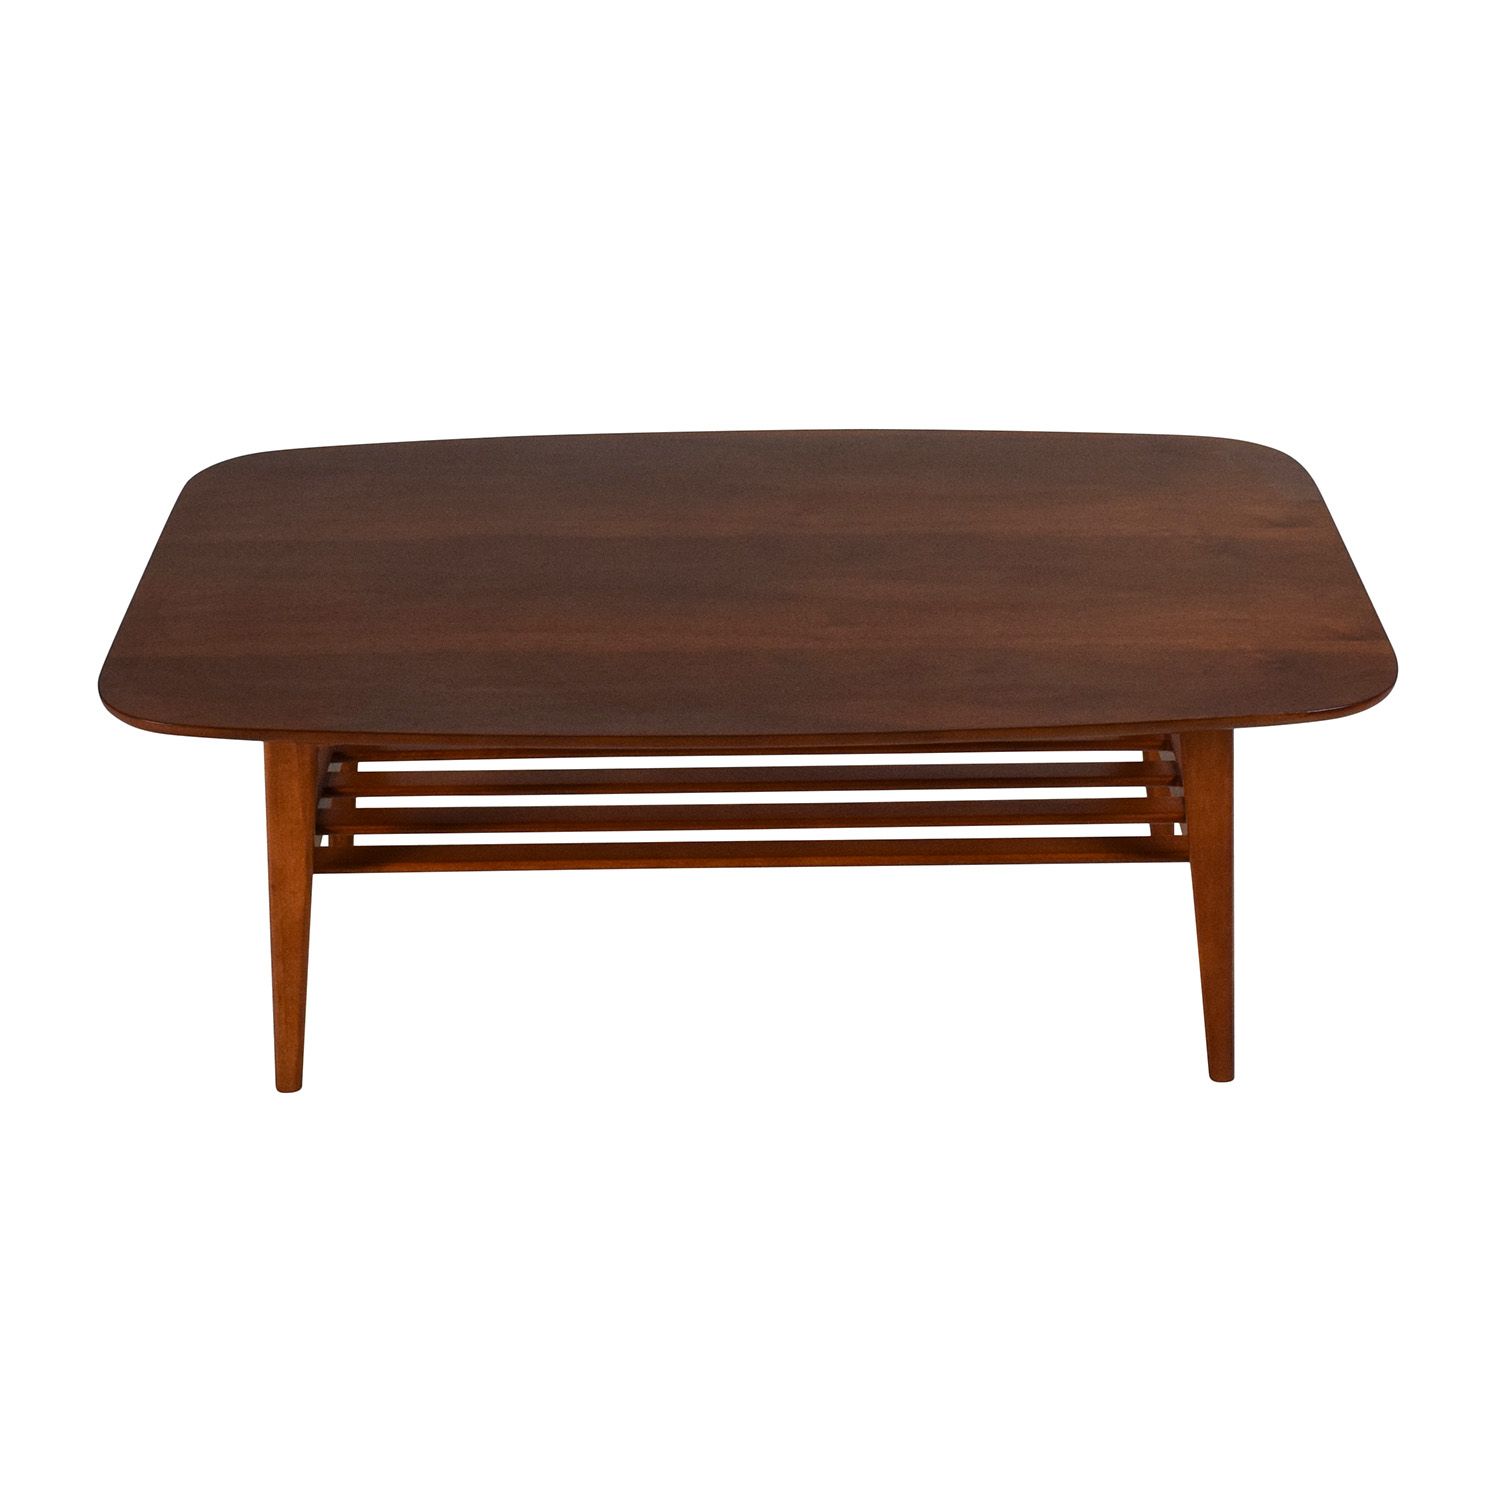 OFF BB Italia BB Italia Wooden Modern Coffee Table Tables - Post modern coffee table